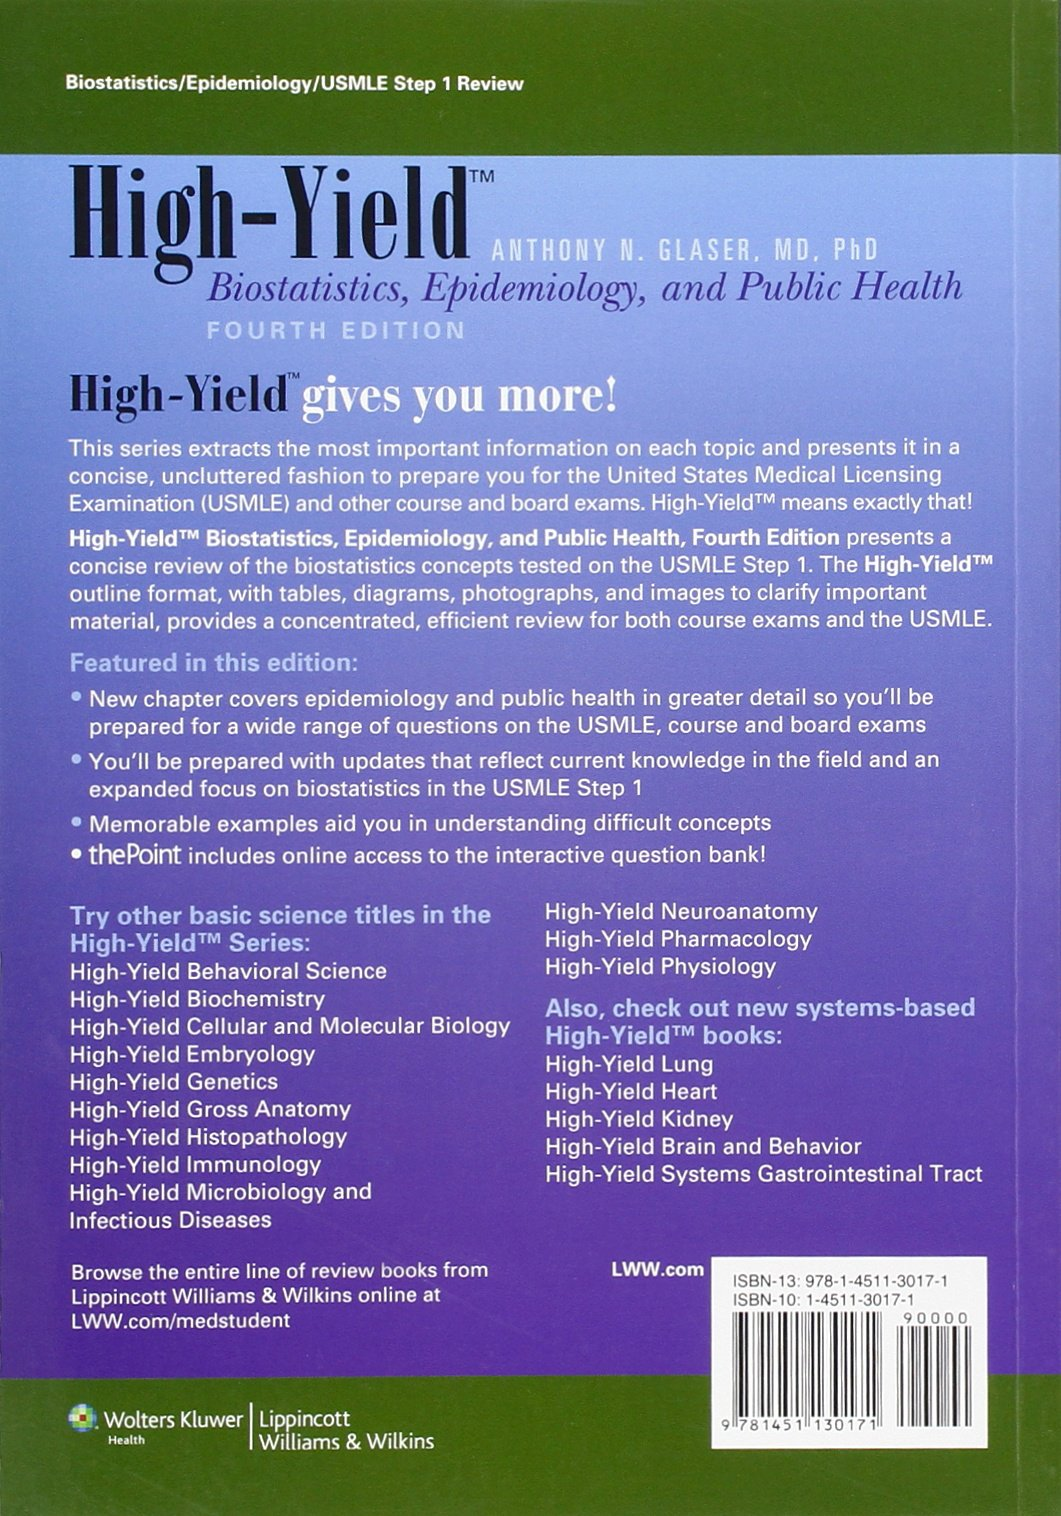 High-Yield Biostatistics, Epidemiology, and Public Health High-yield Series:  Amazon.co.uk: Anthony N. Glaser: Books